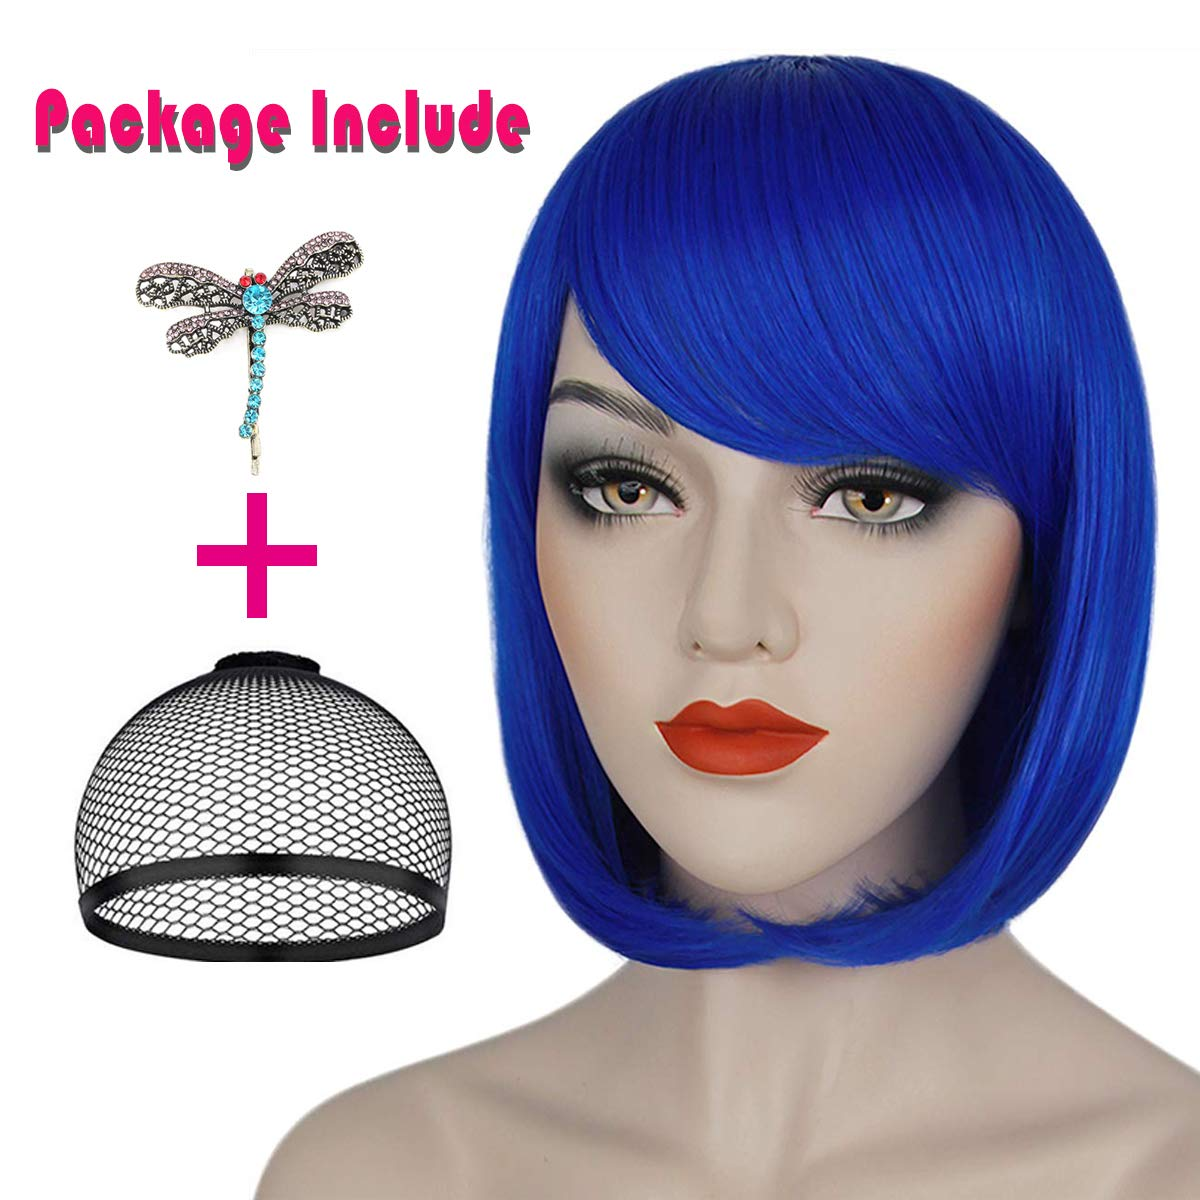 Amazon Com Ruina Coraline Wig Blue Bob Cosplay Costume Wigs For Women Girls Short Straight Hair Wig With Bangs Cute Heat Resistant Synthetic Wigs For Party Halloween R020bl Beauty